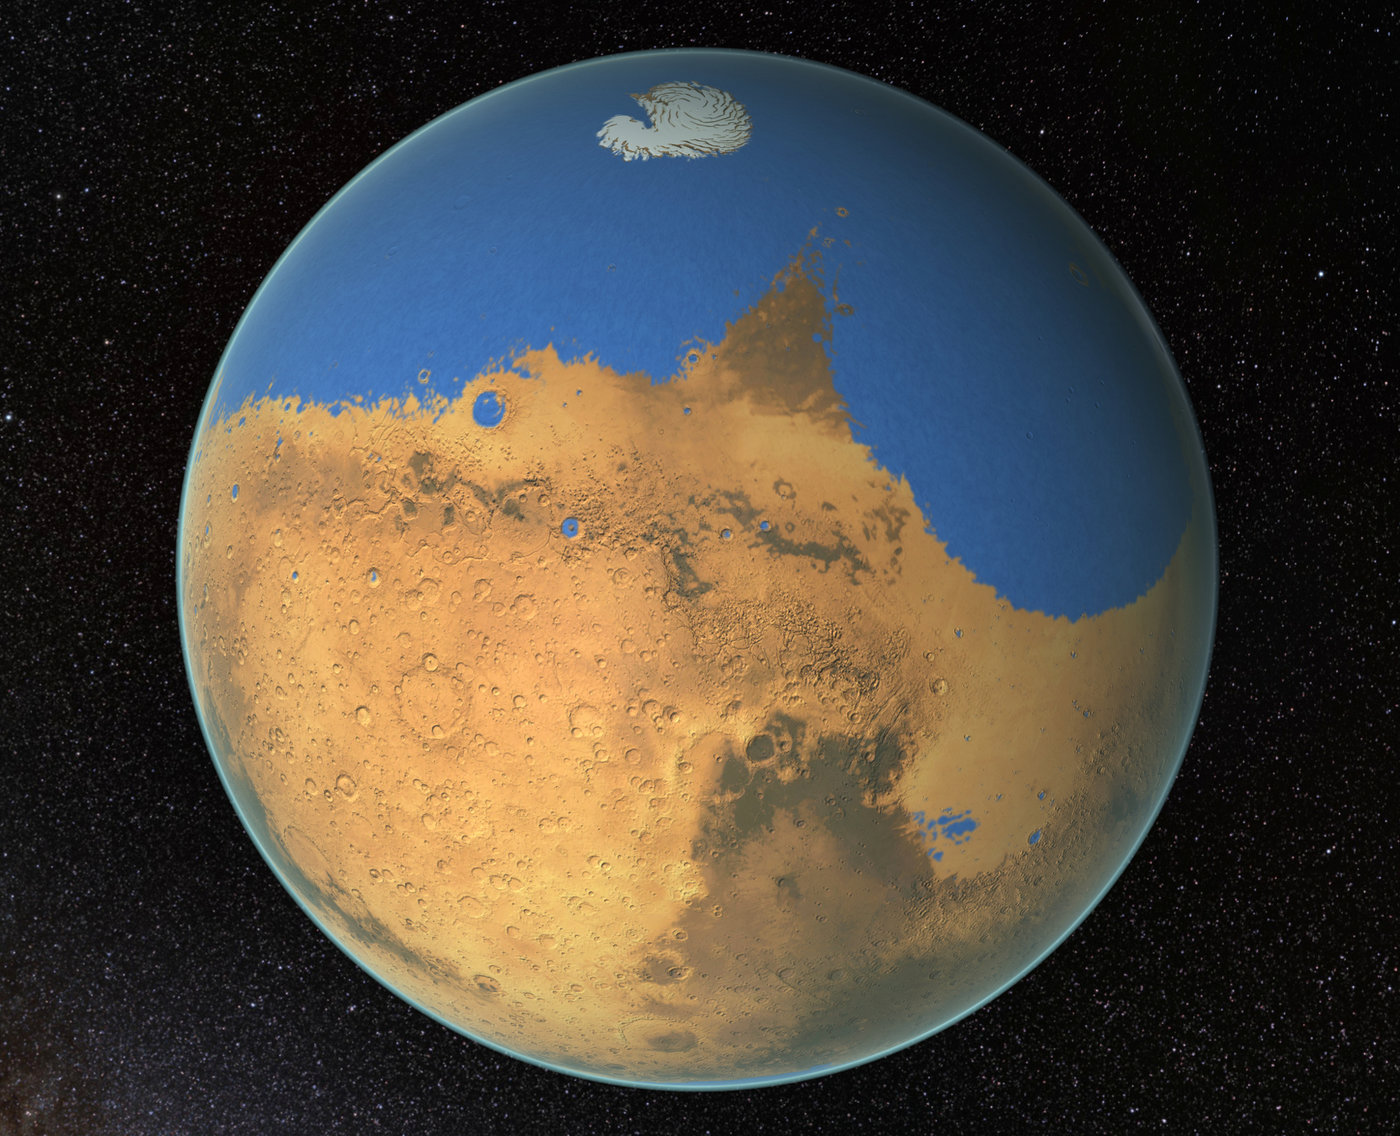 Billions of years ago, Mars could have looked like this with an ocean covering part of its surface. Image: NASA/GSFC)